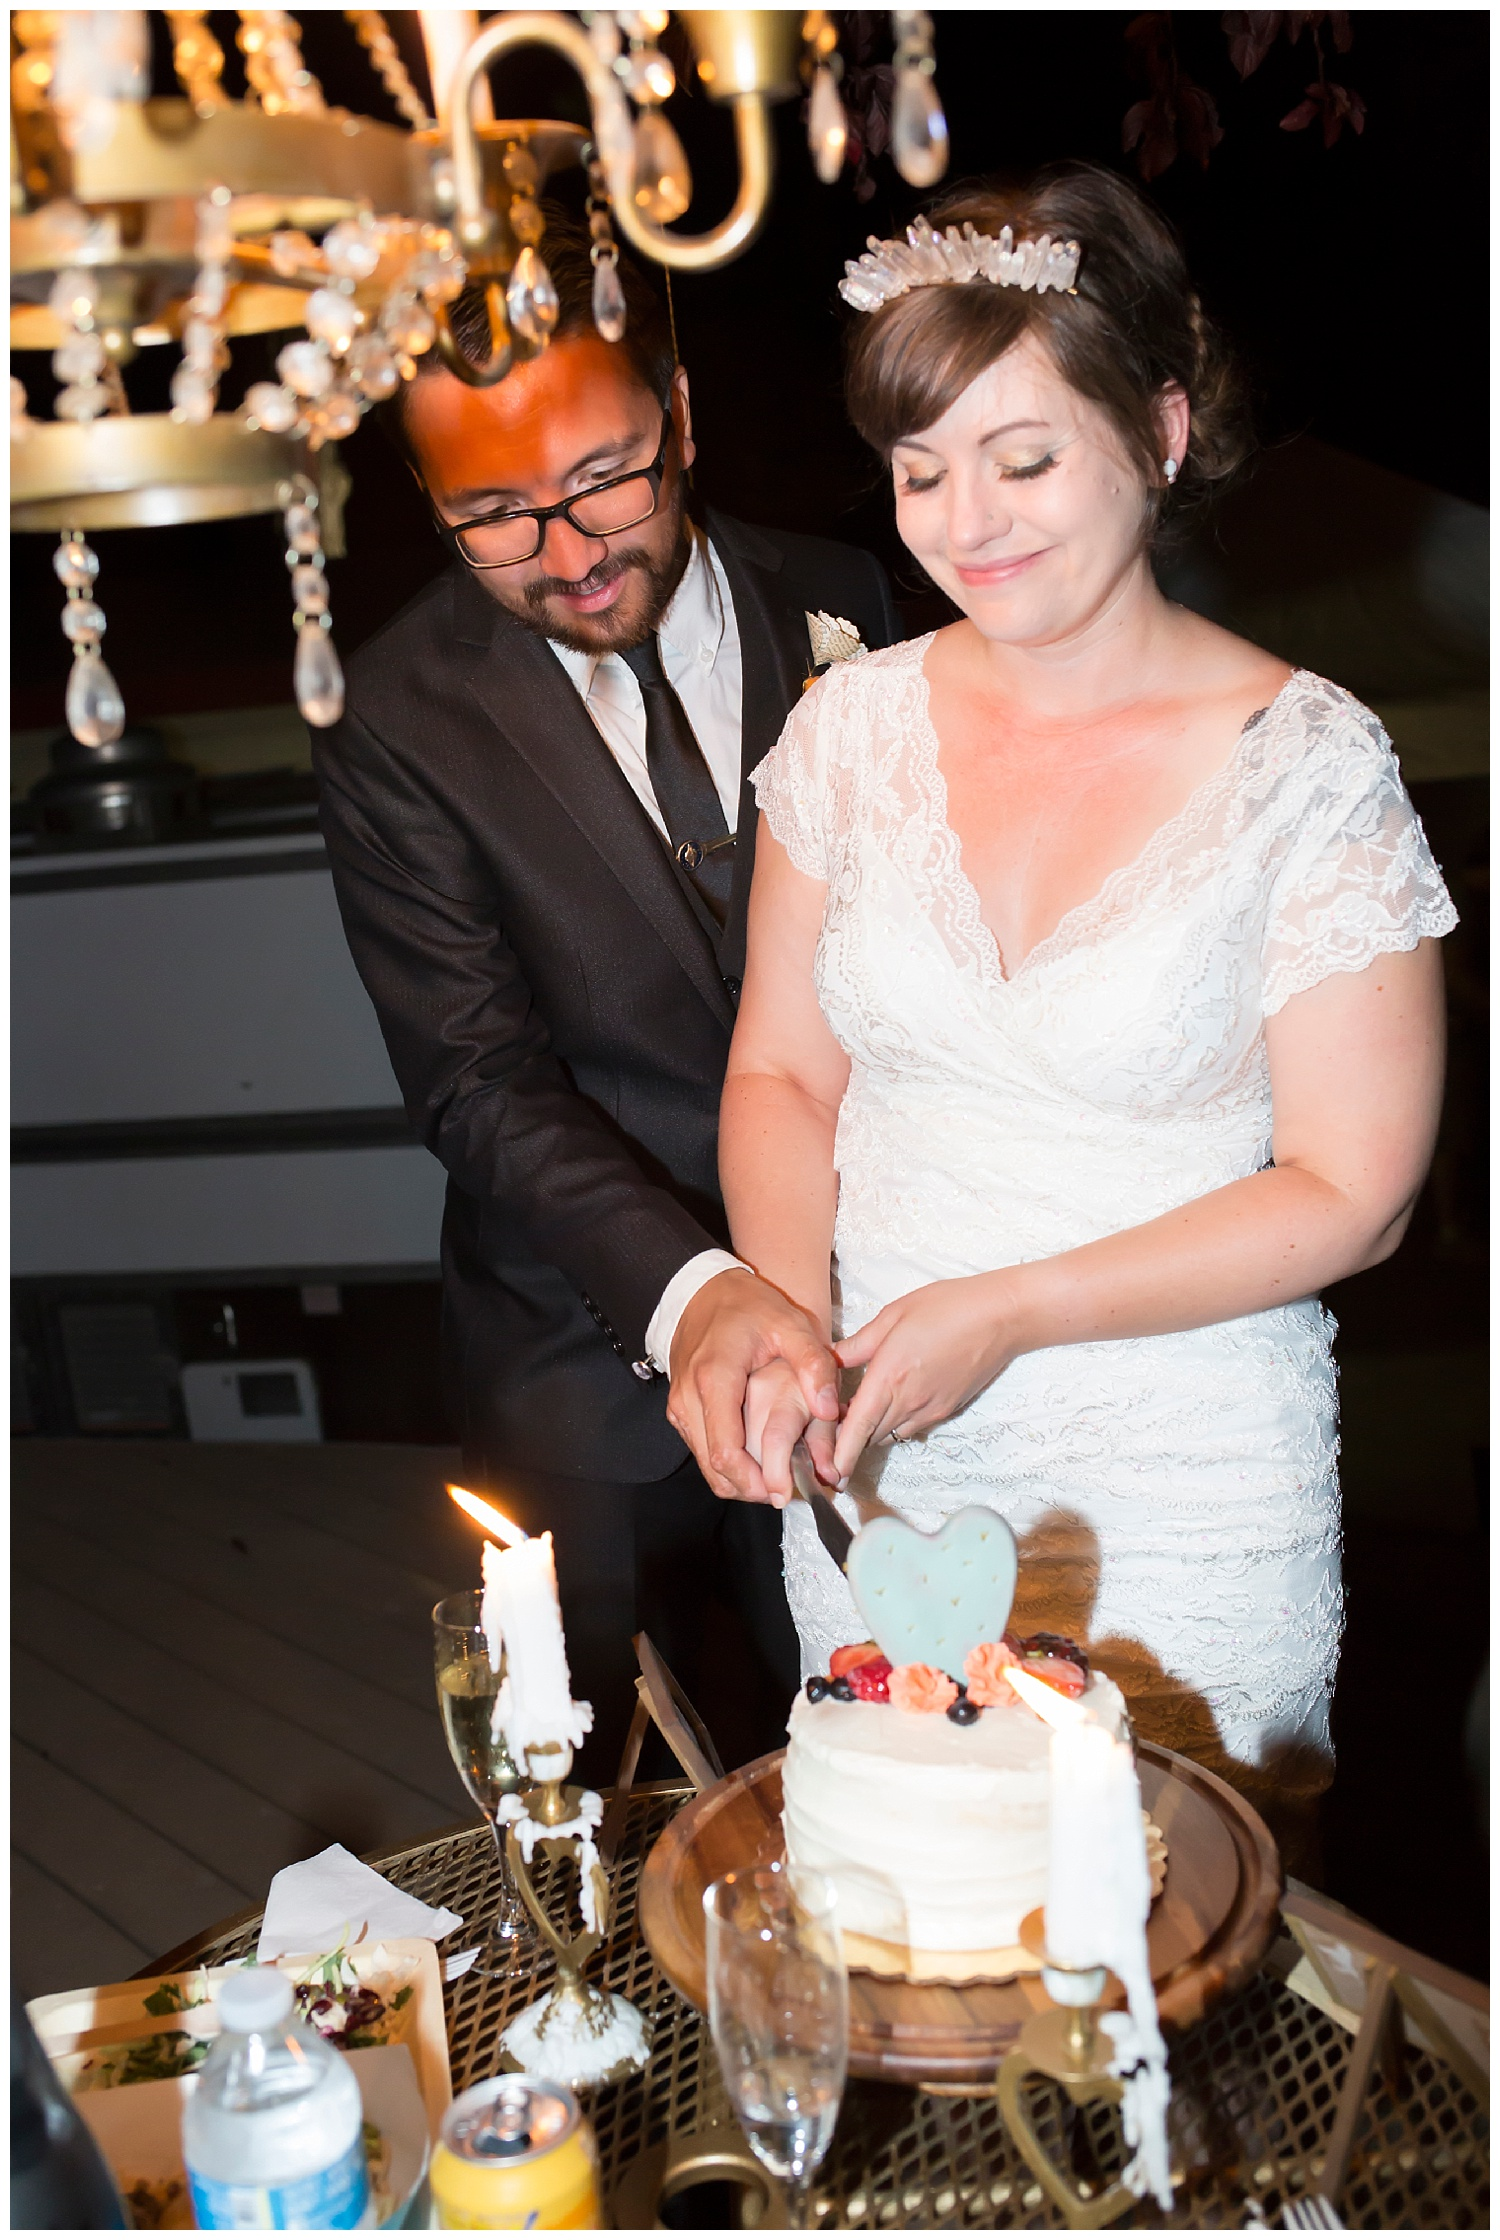 Liz+Ryan_wedding_Renoda Campbell Photography-4964.jpg